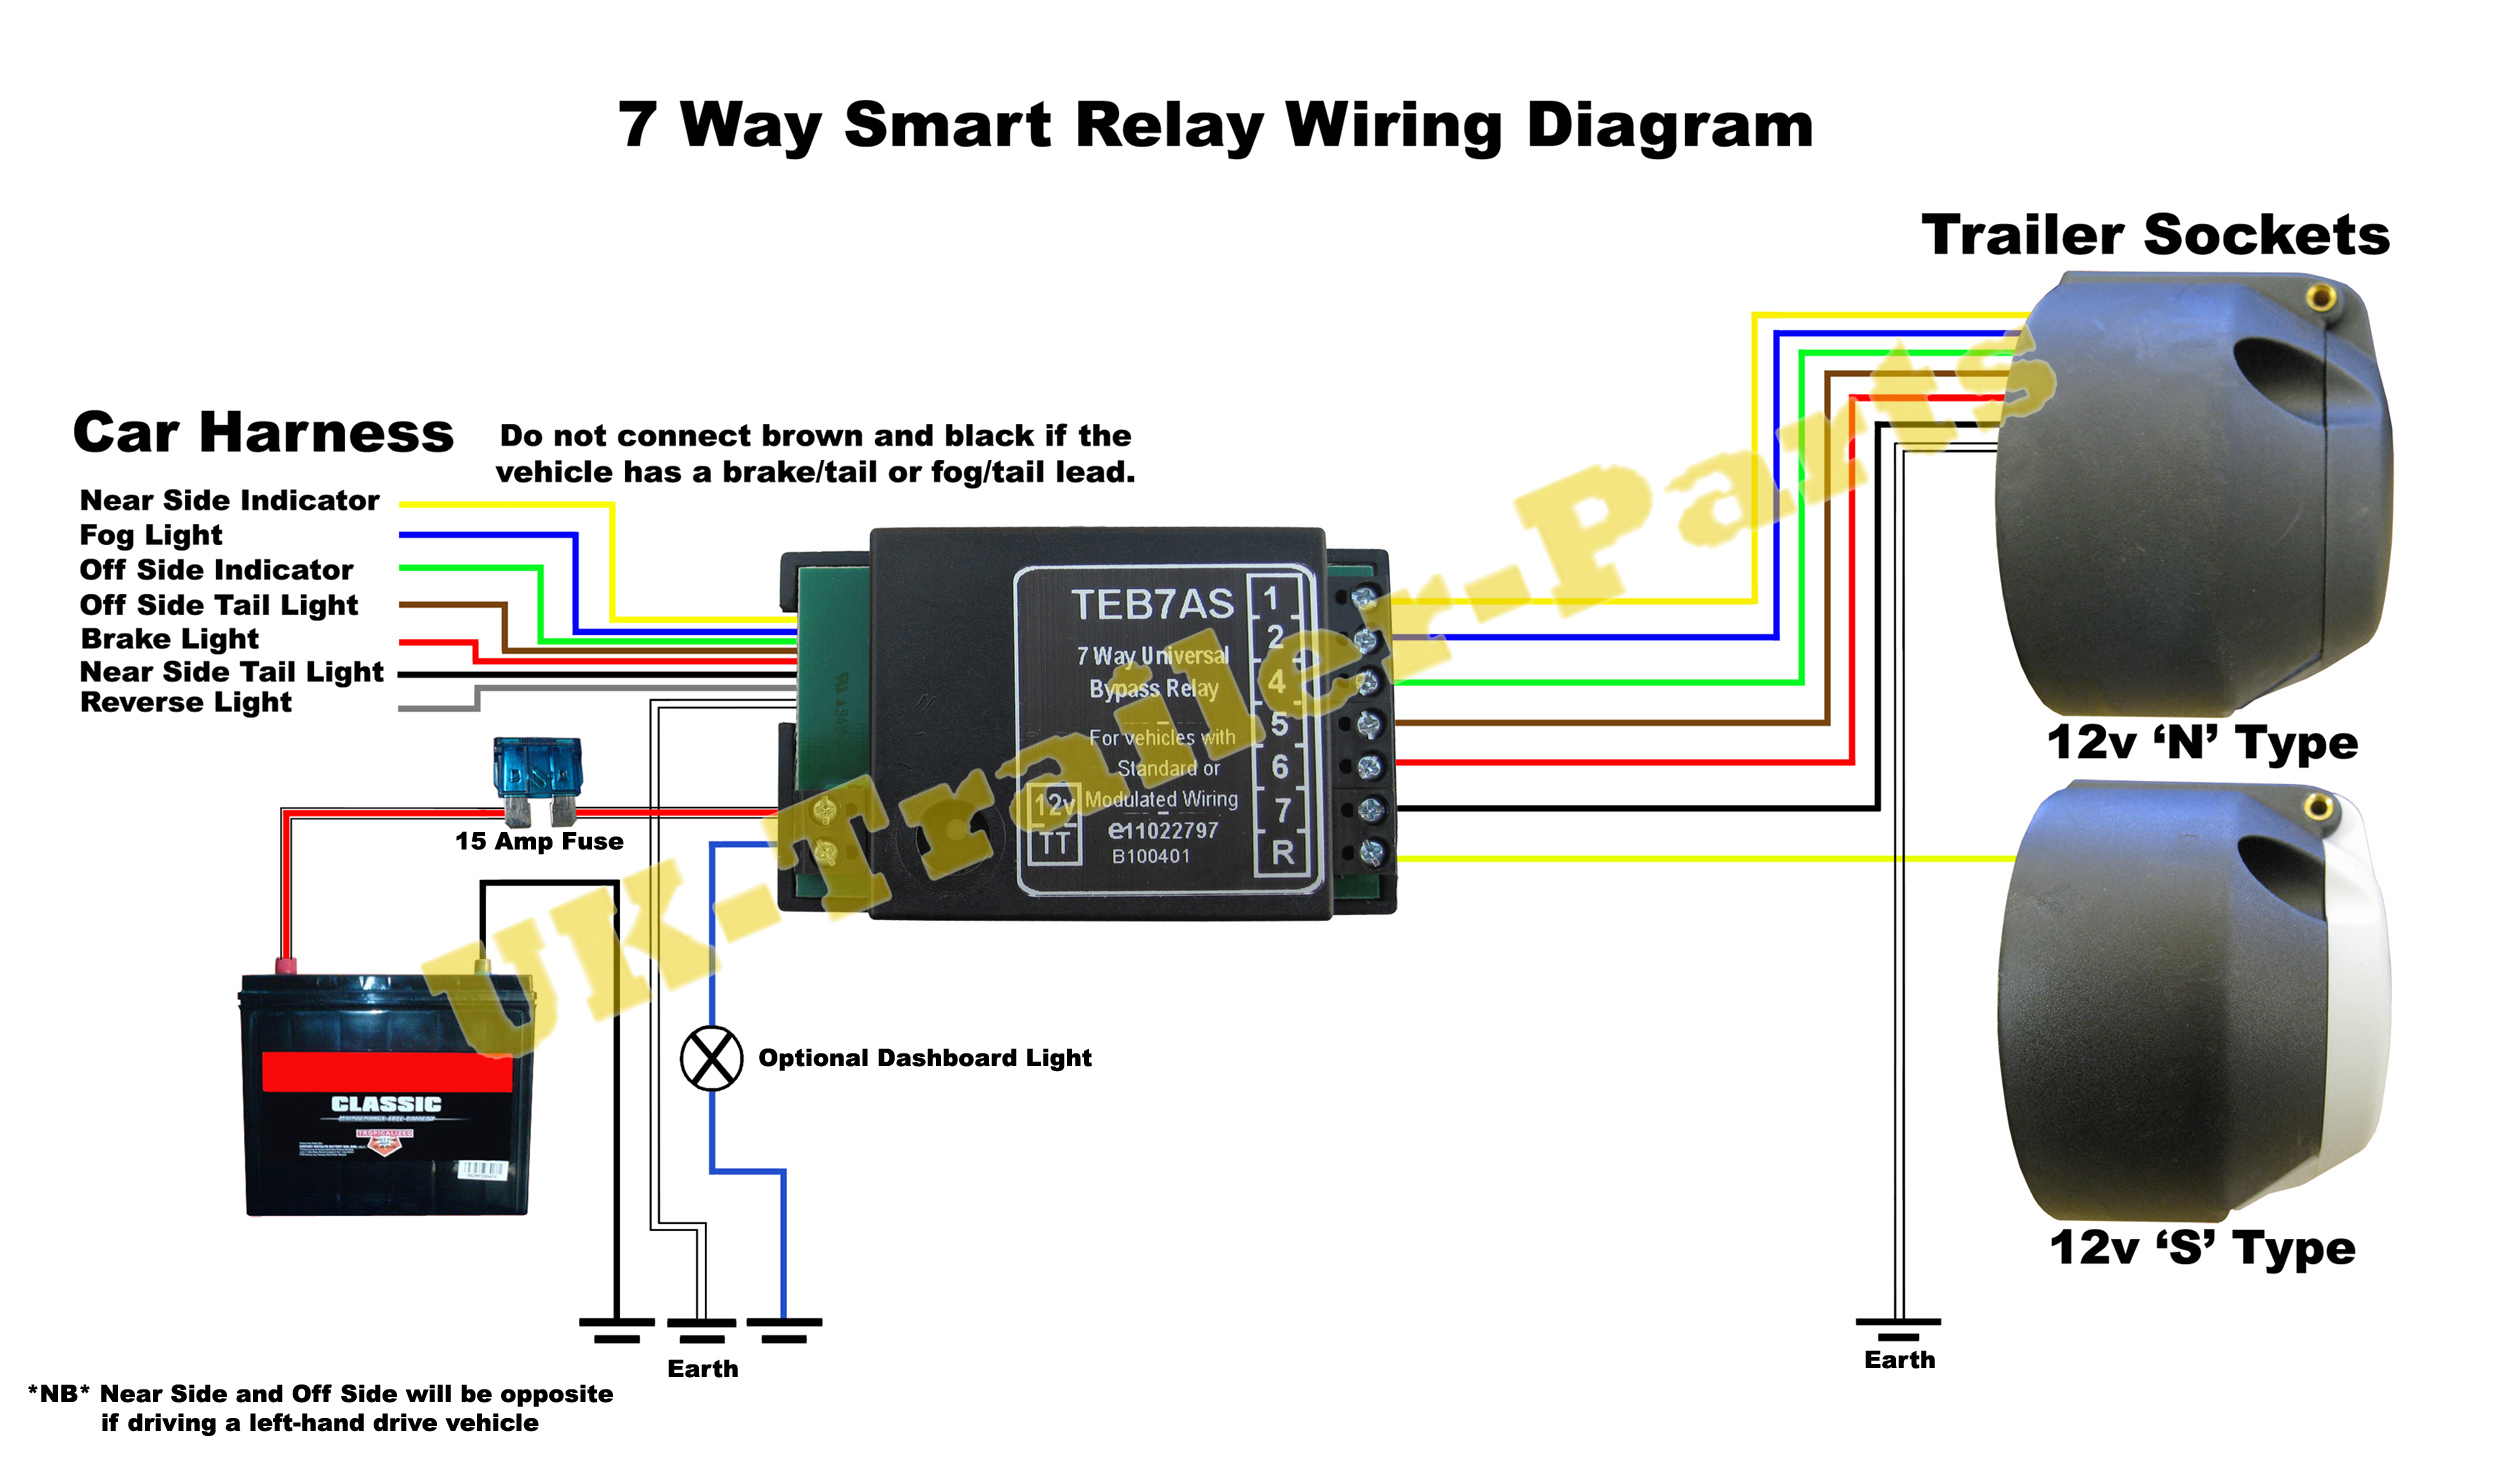 14 pole relay wiring diagram 7 way universal bypass relay wiring diagram uk trailer parts 7 way universal bypass relay wiring